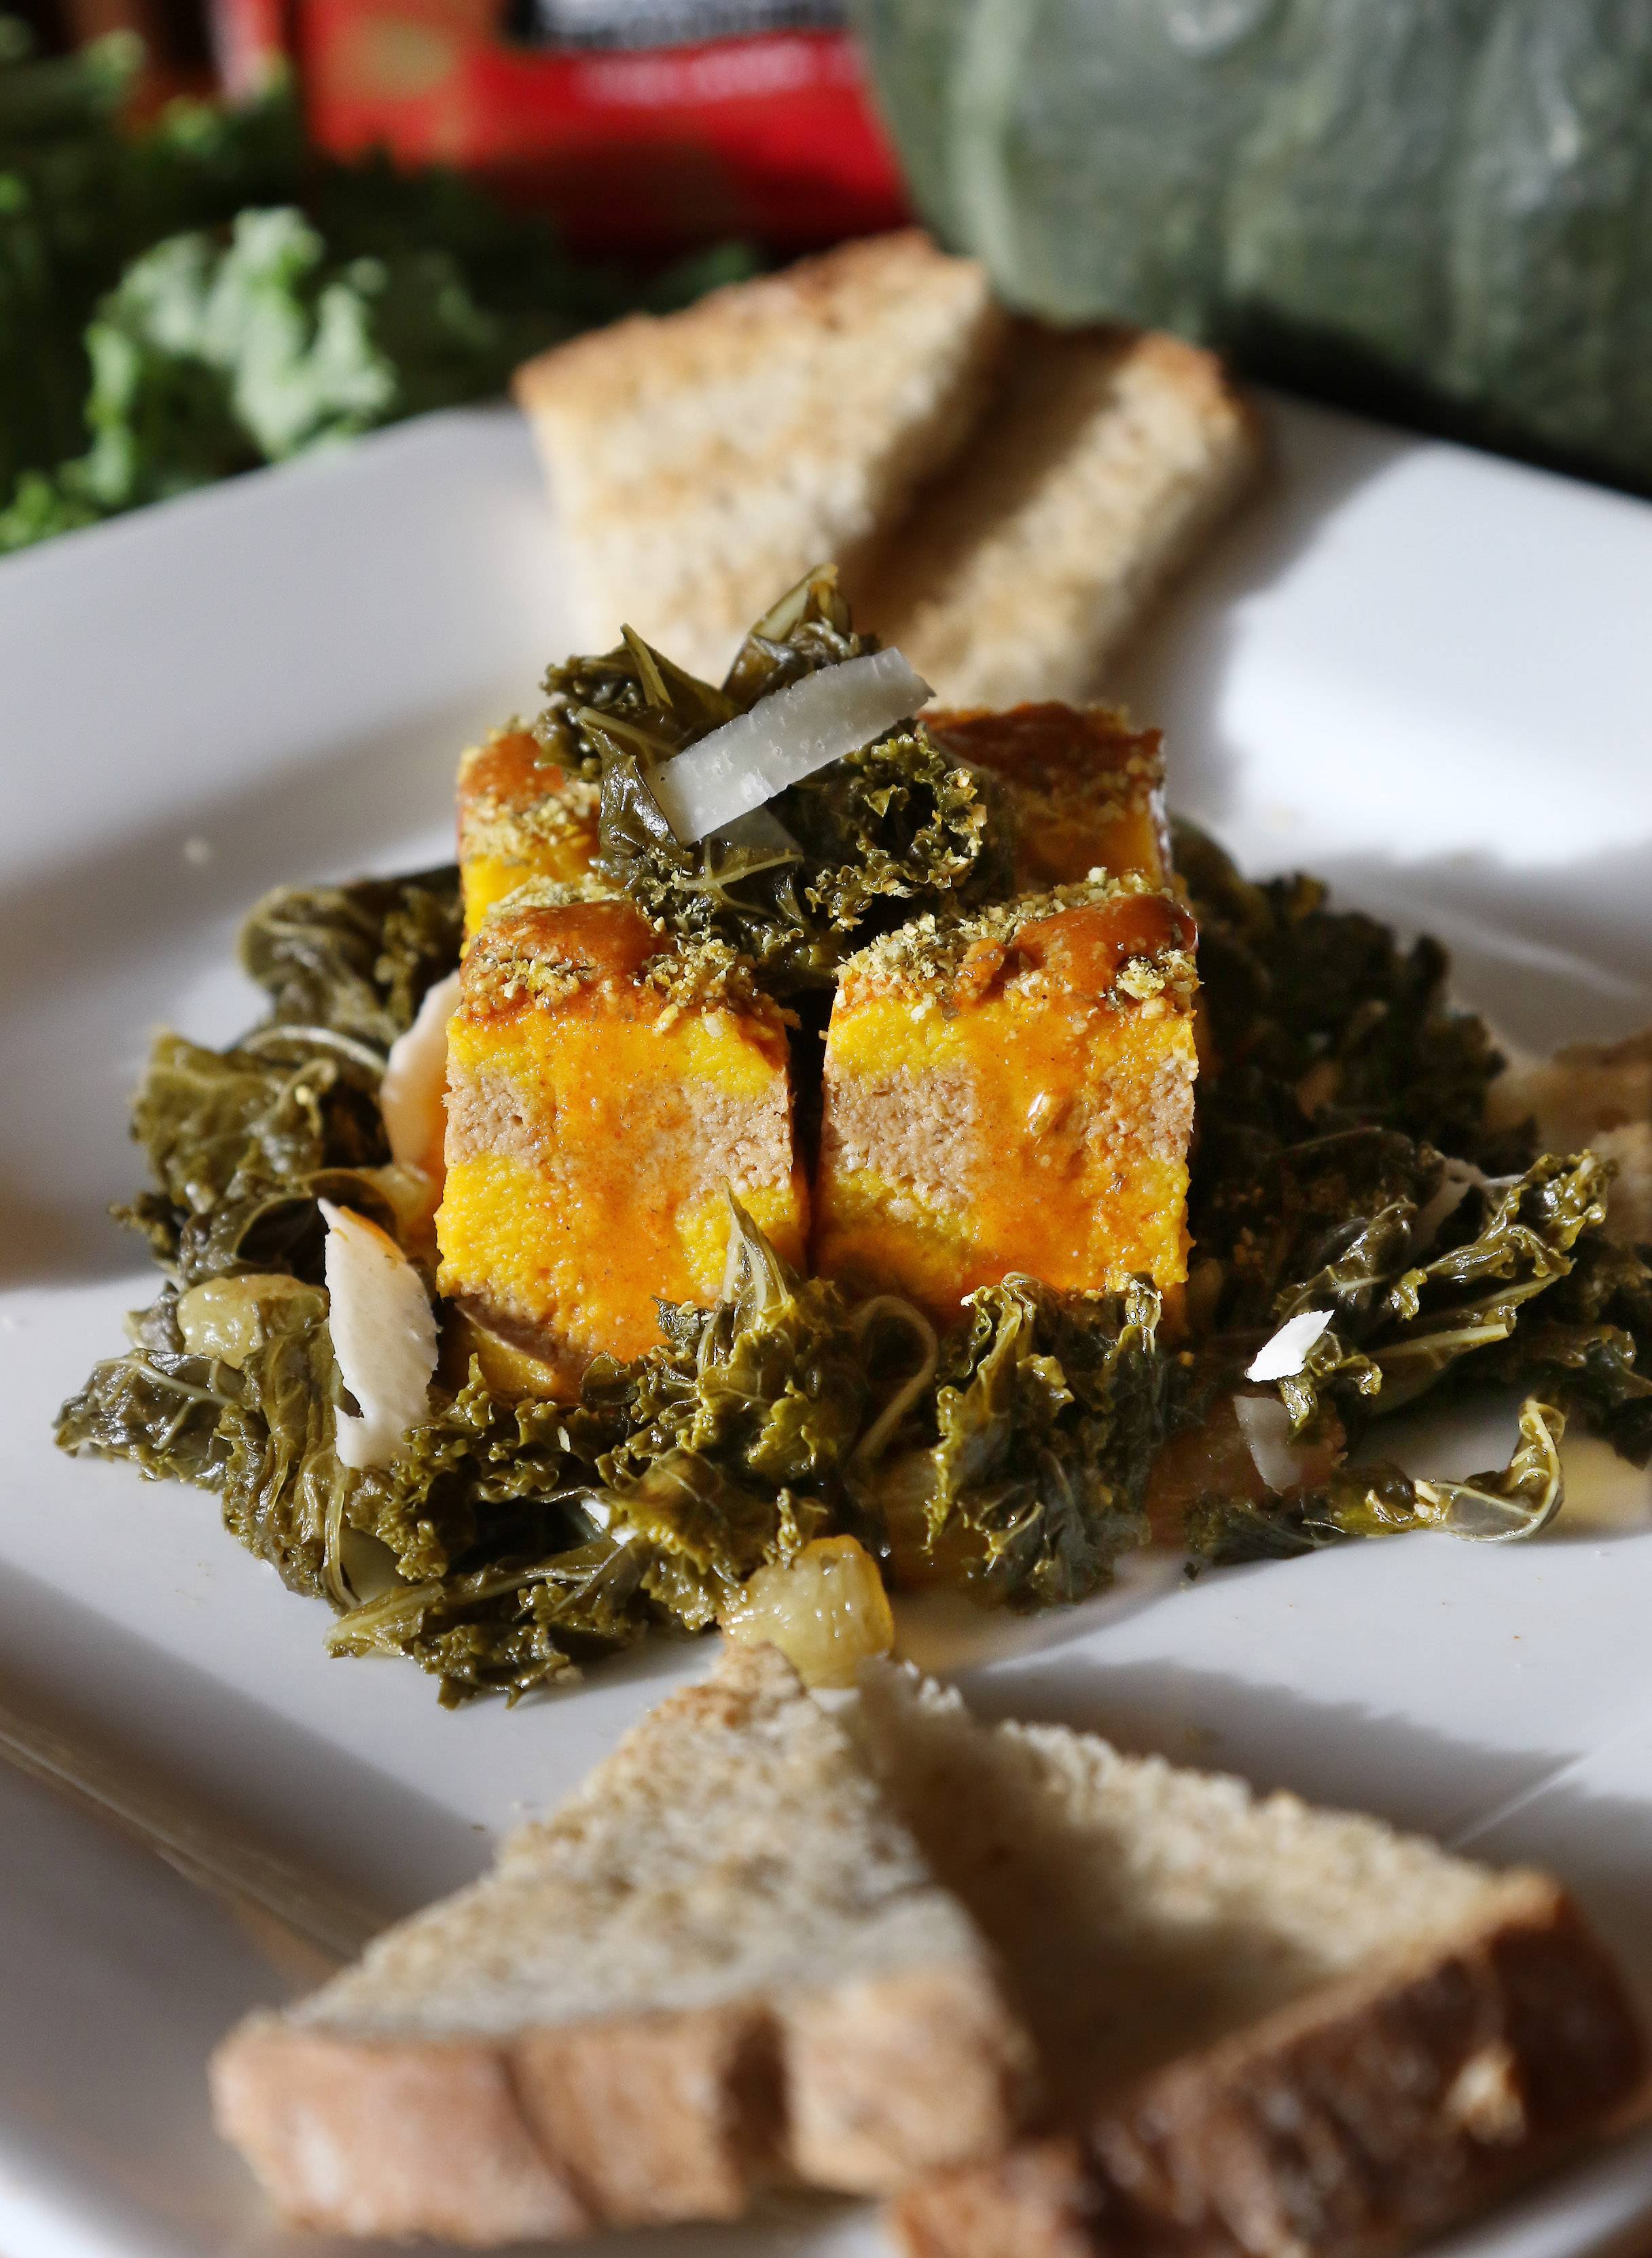 Gilbert R. Boucher II/gboucher@dailyherald.comTimbale Of Roasted Squash And Sardine Mousseline With Quick Pickled Kale made by Cook of the Week Challenge contestant Joe Wachter of Lake Zurich.